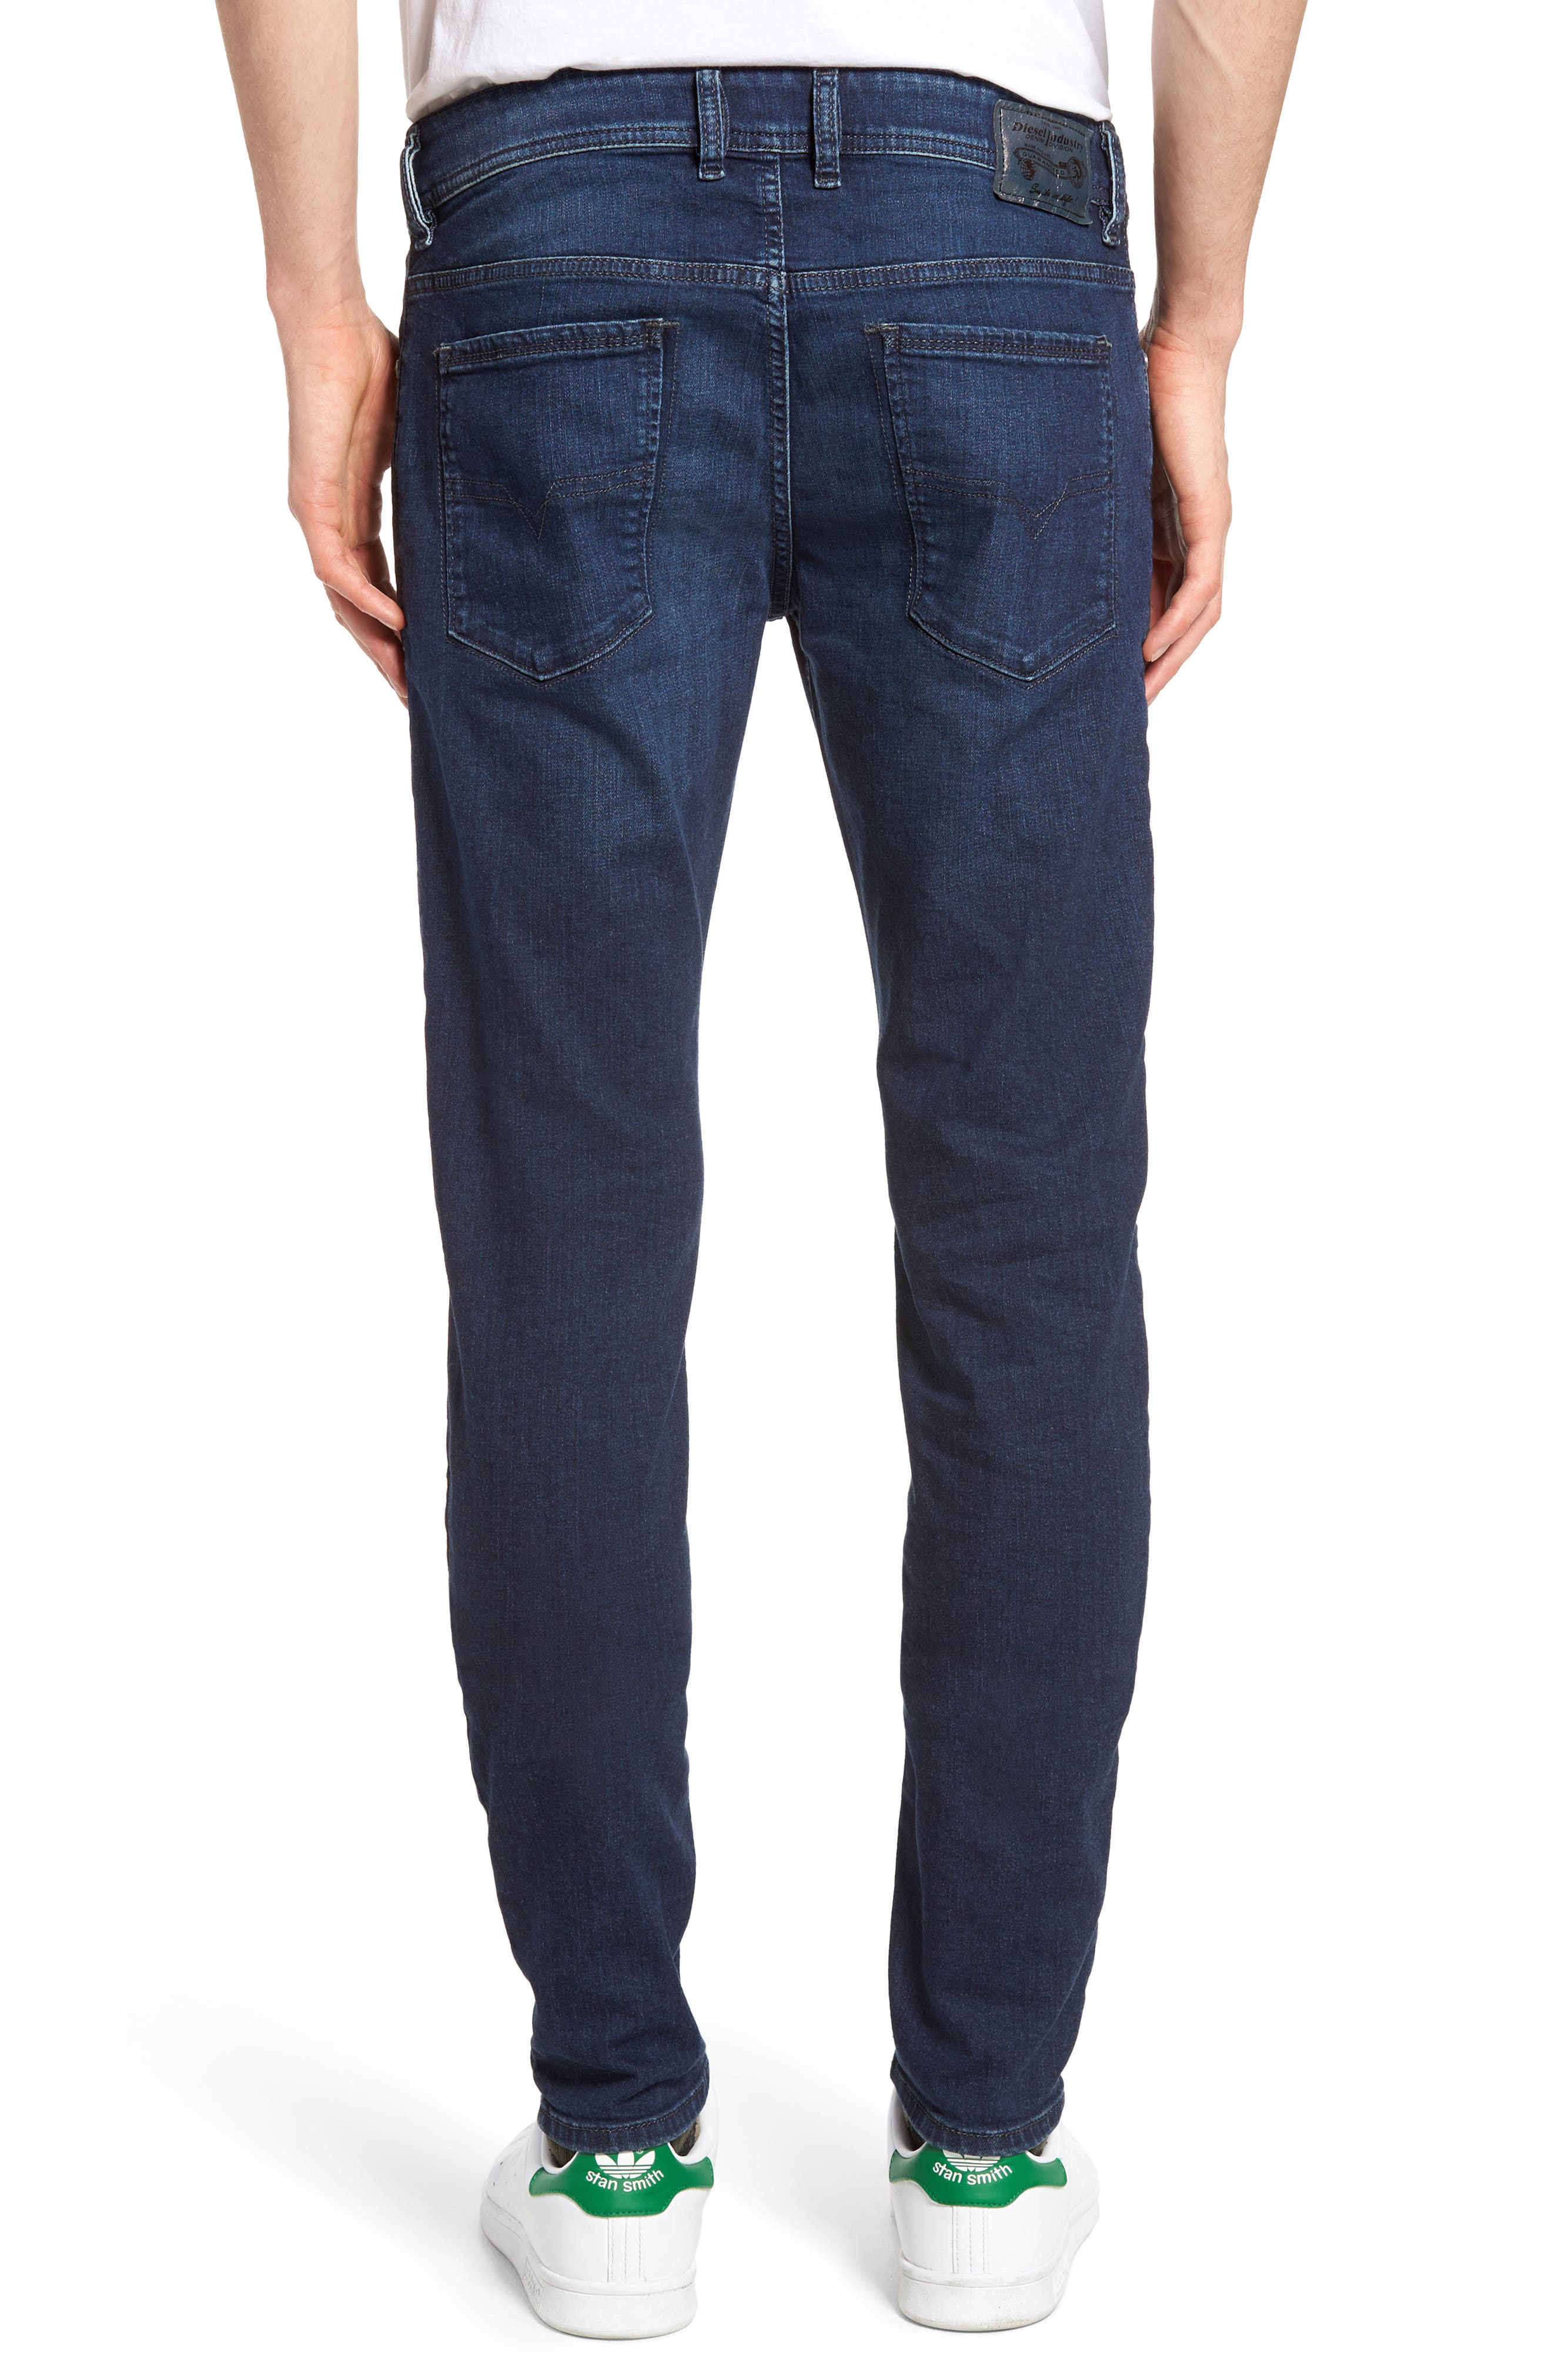 Sleenker Skinny Fit Jeans,                             Alternate thumbnail 2, color,                             400